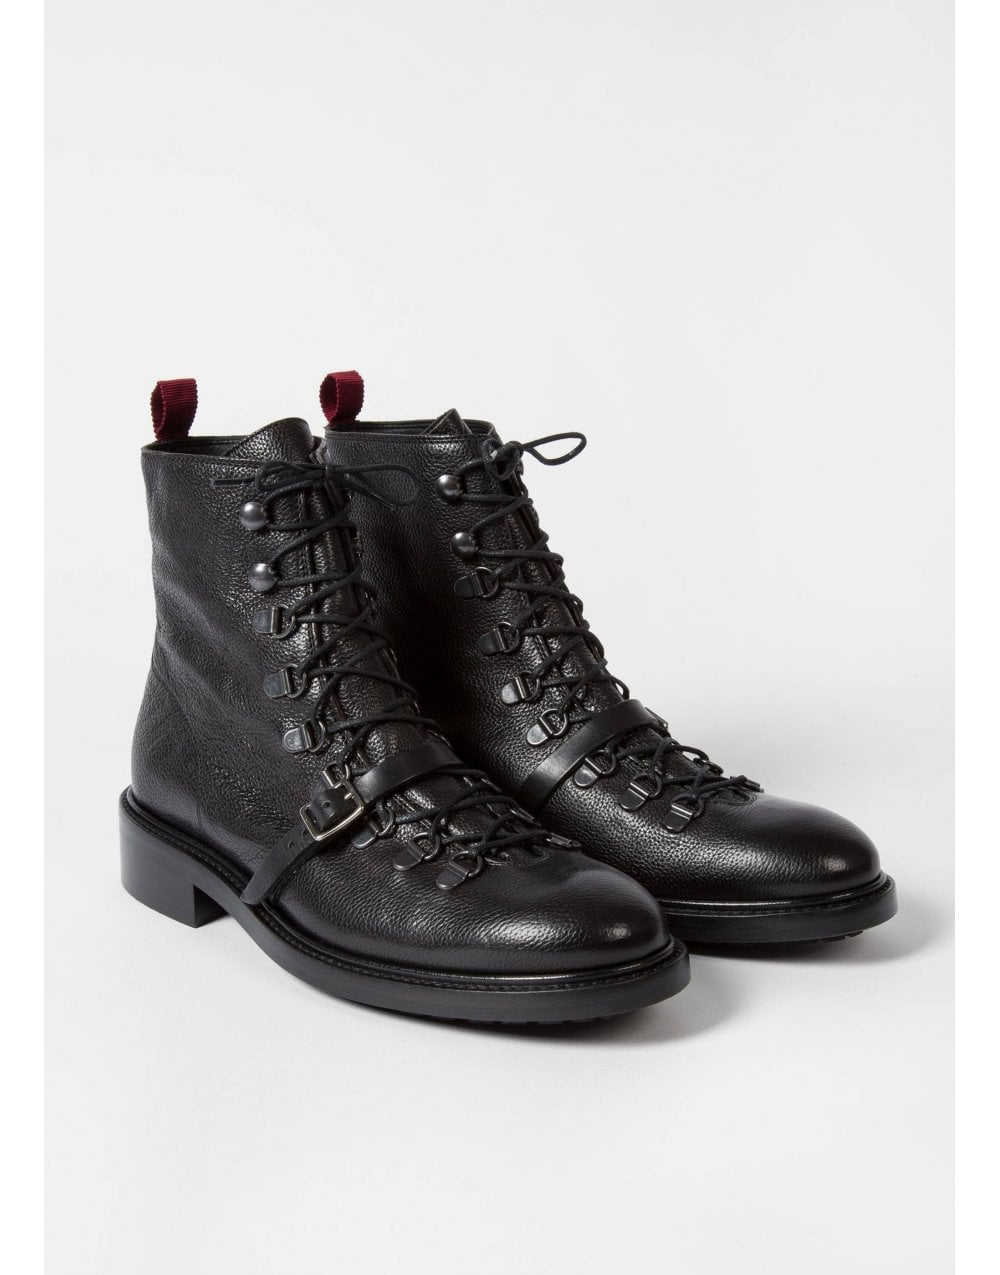 Paul Smith Pepper Lace Up Hiker Boots